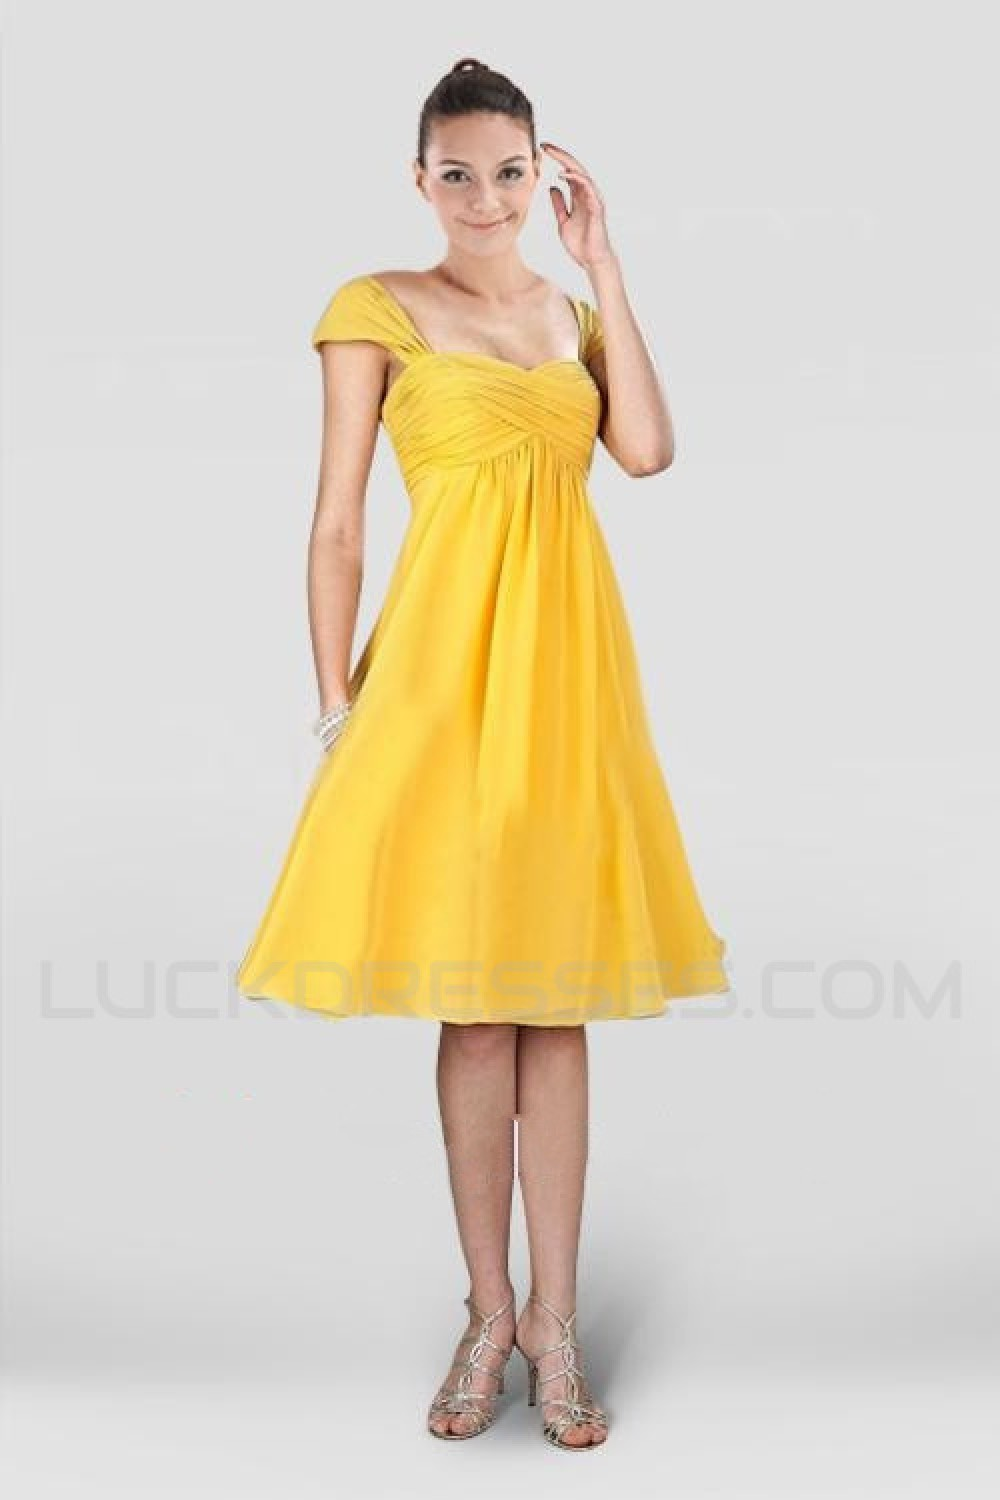 31cf6a25a01 A-Line Short Yellow Chiffon Bridesmaid Dresses Wedding Party ...